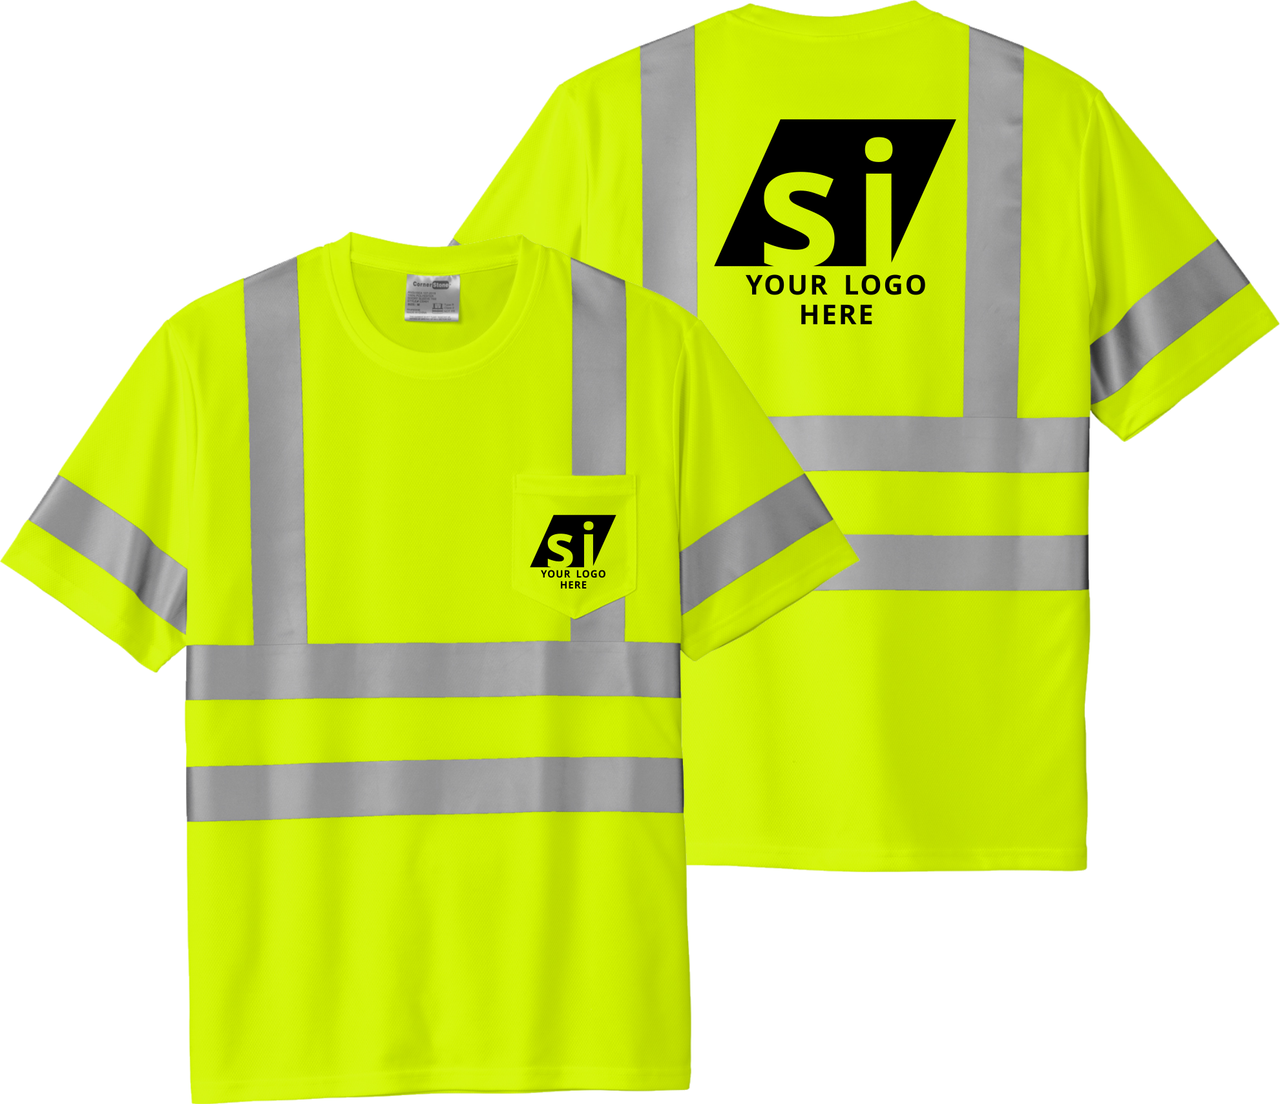 Class 3 Reflective Tshirt 100% Polyester with Logo   Custom Printed Class 3 Tee